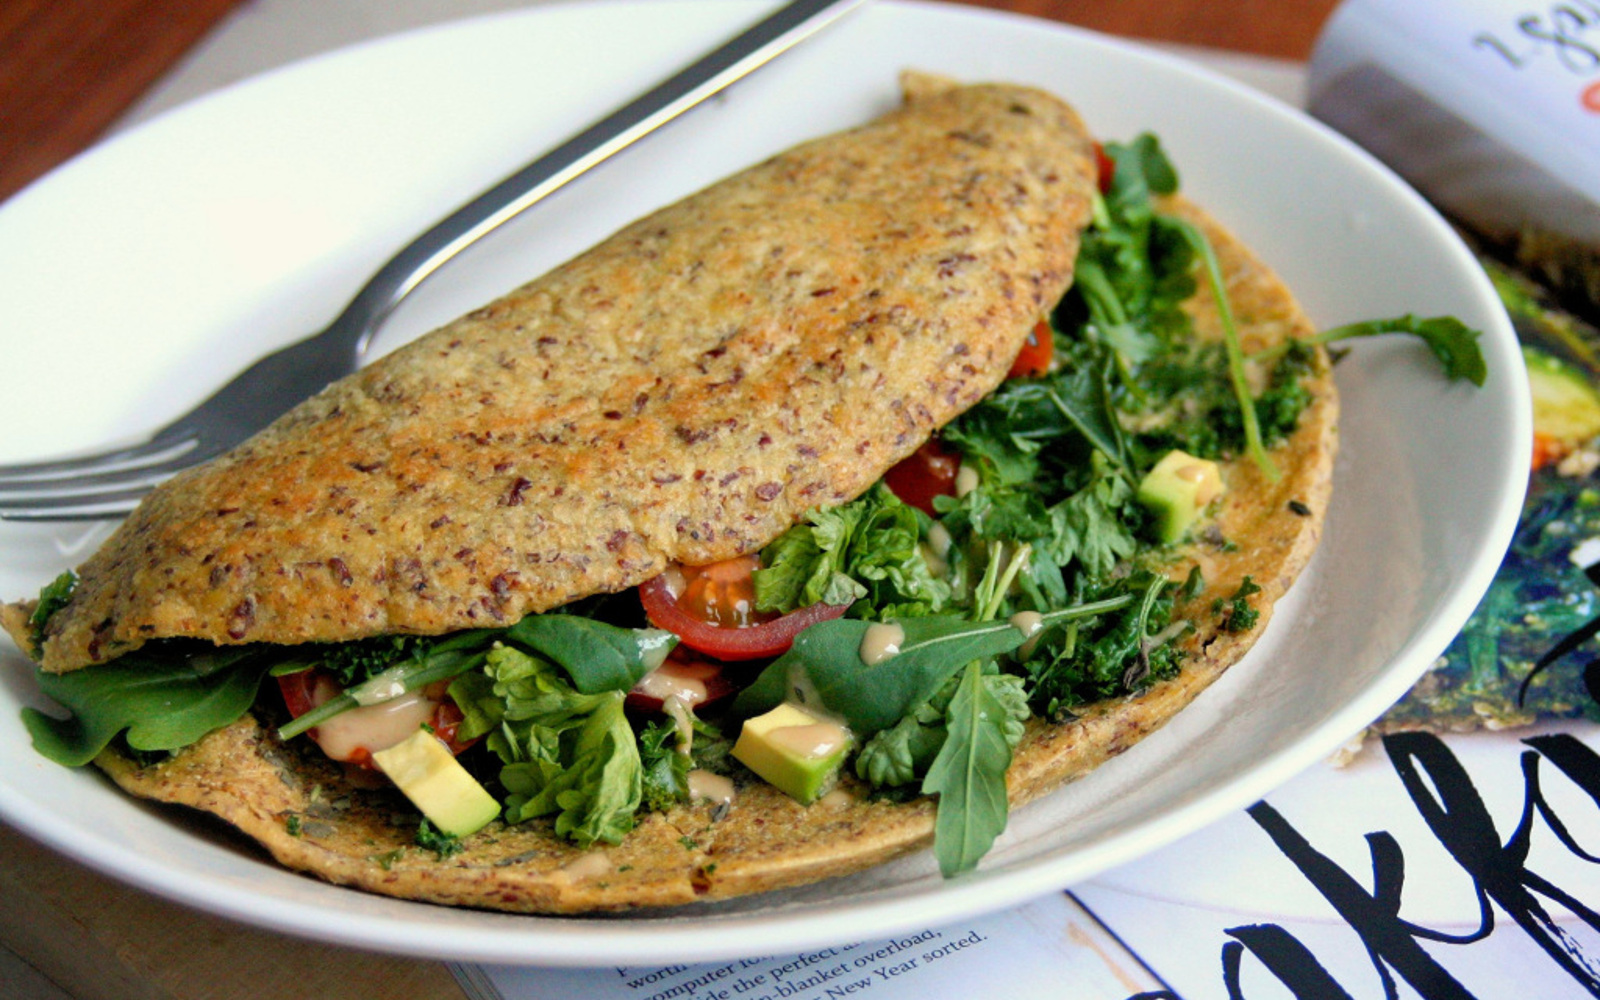 Chickpea Flour Omelette With Spinach and Kale